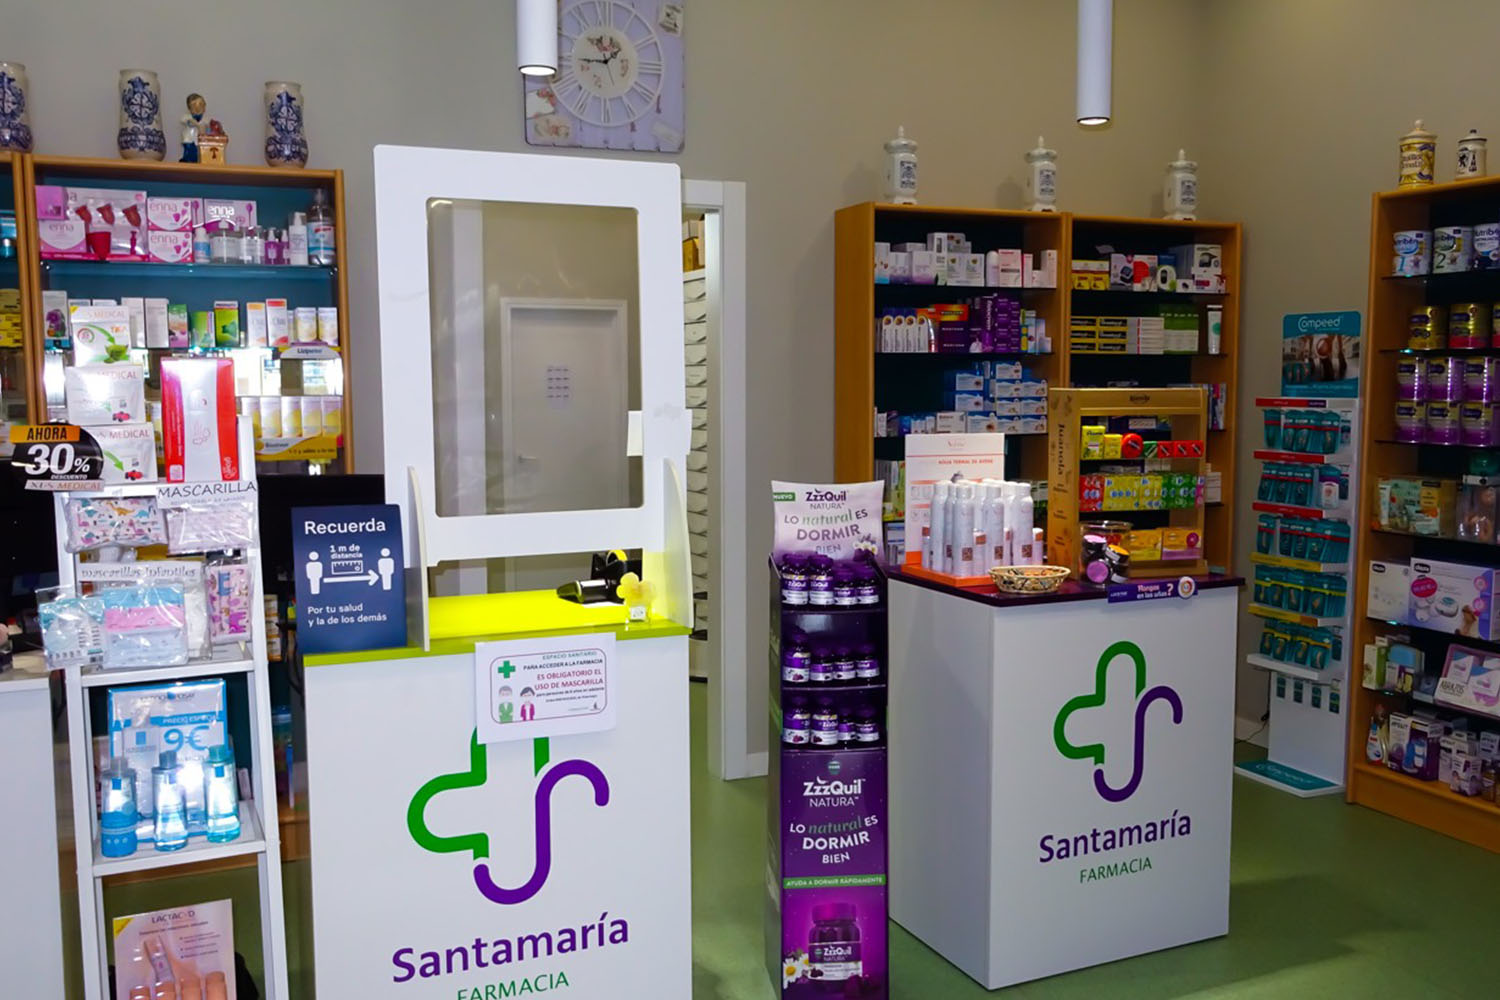 farmacia-beatriz-santamaria-alonso-1-2